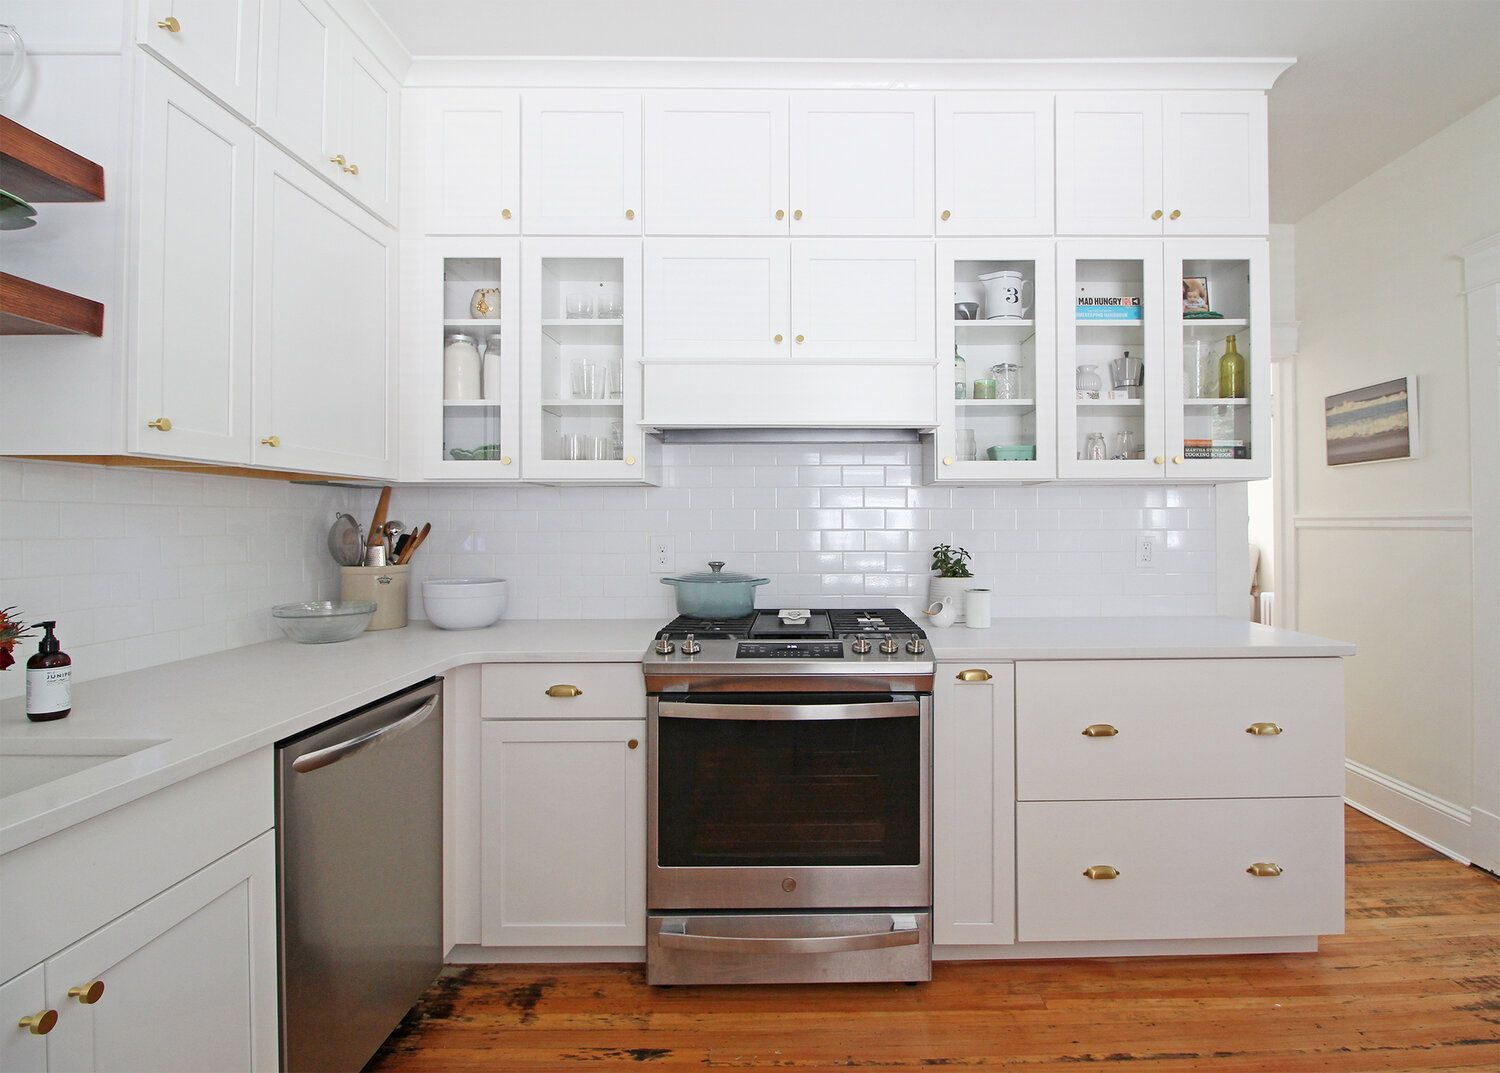 Bellevue Bungalow Kitchen Before After In 2020 Bungalow Kitchen White Shaker Kitchen Kitchen Renovation